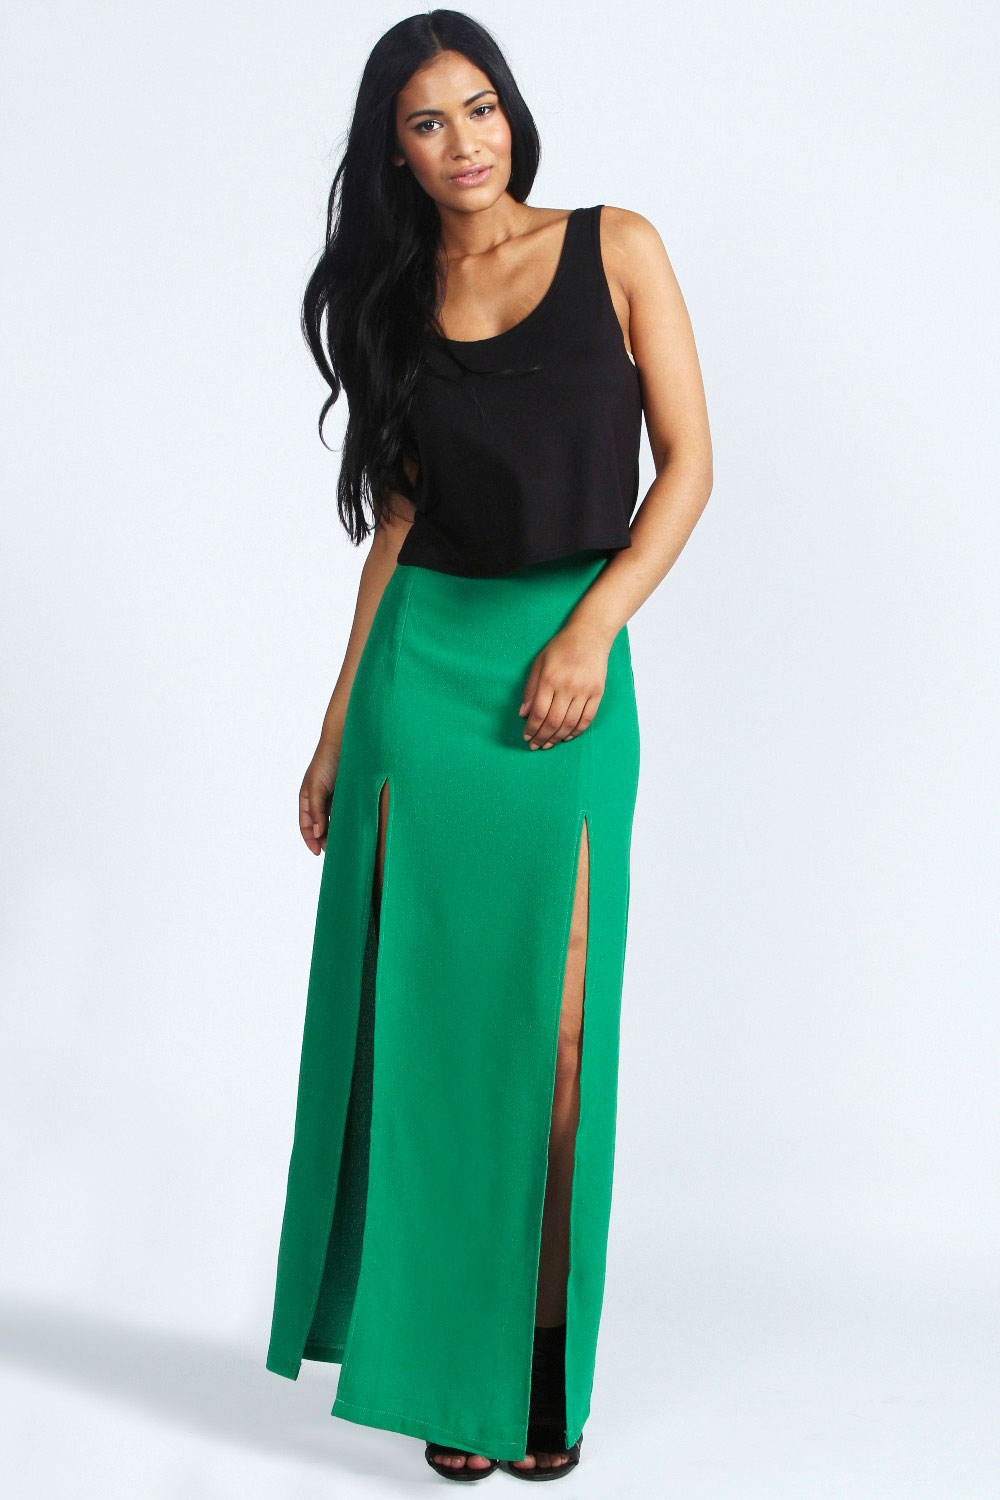 Waisted high maxi skirt with split video